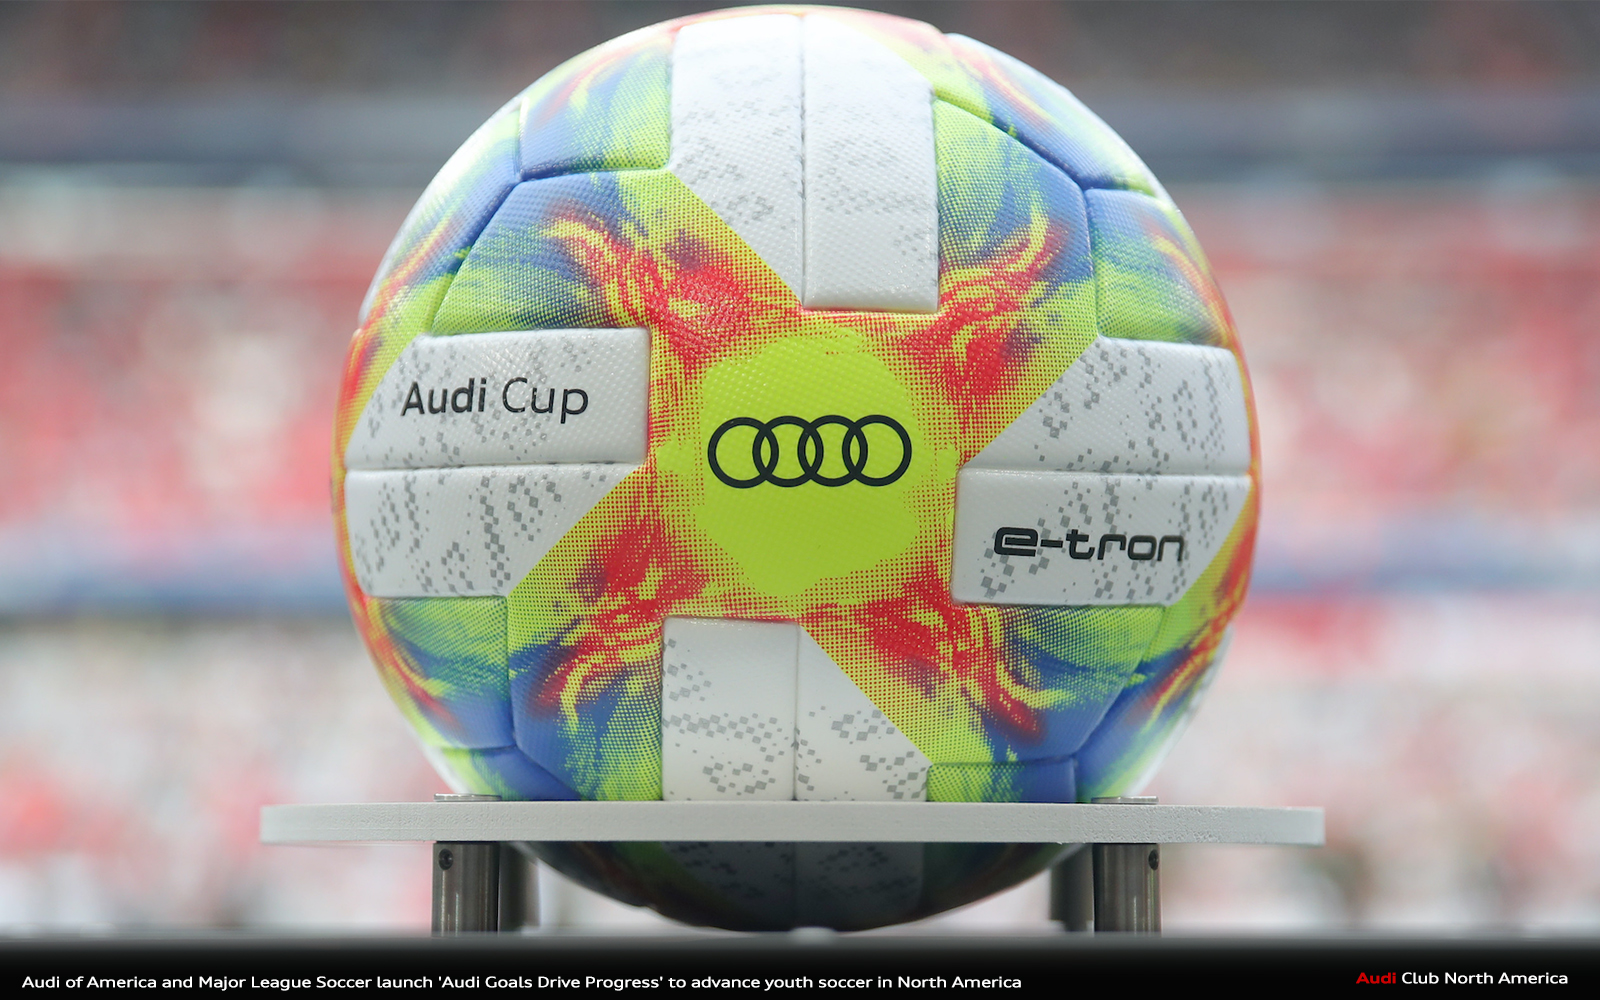 Audi of America and Major League Soccer Launch 'Audi Goals Drive Progress' To Advance Youth Soccer in North America